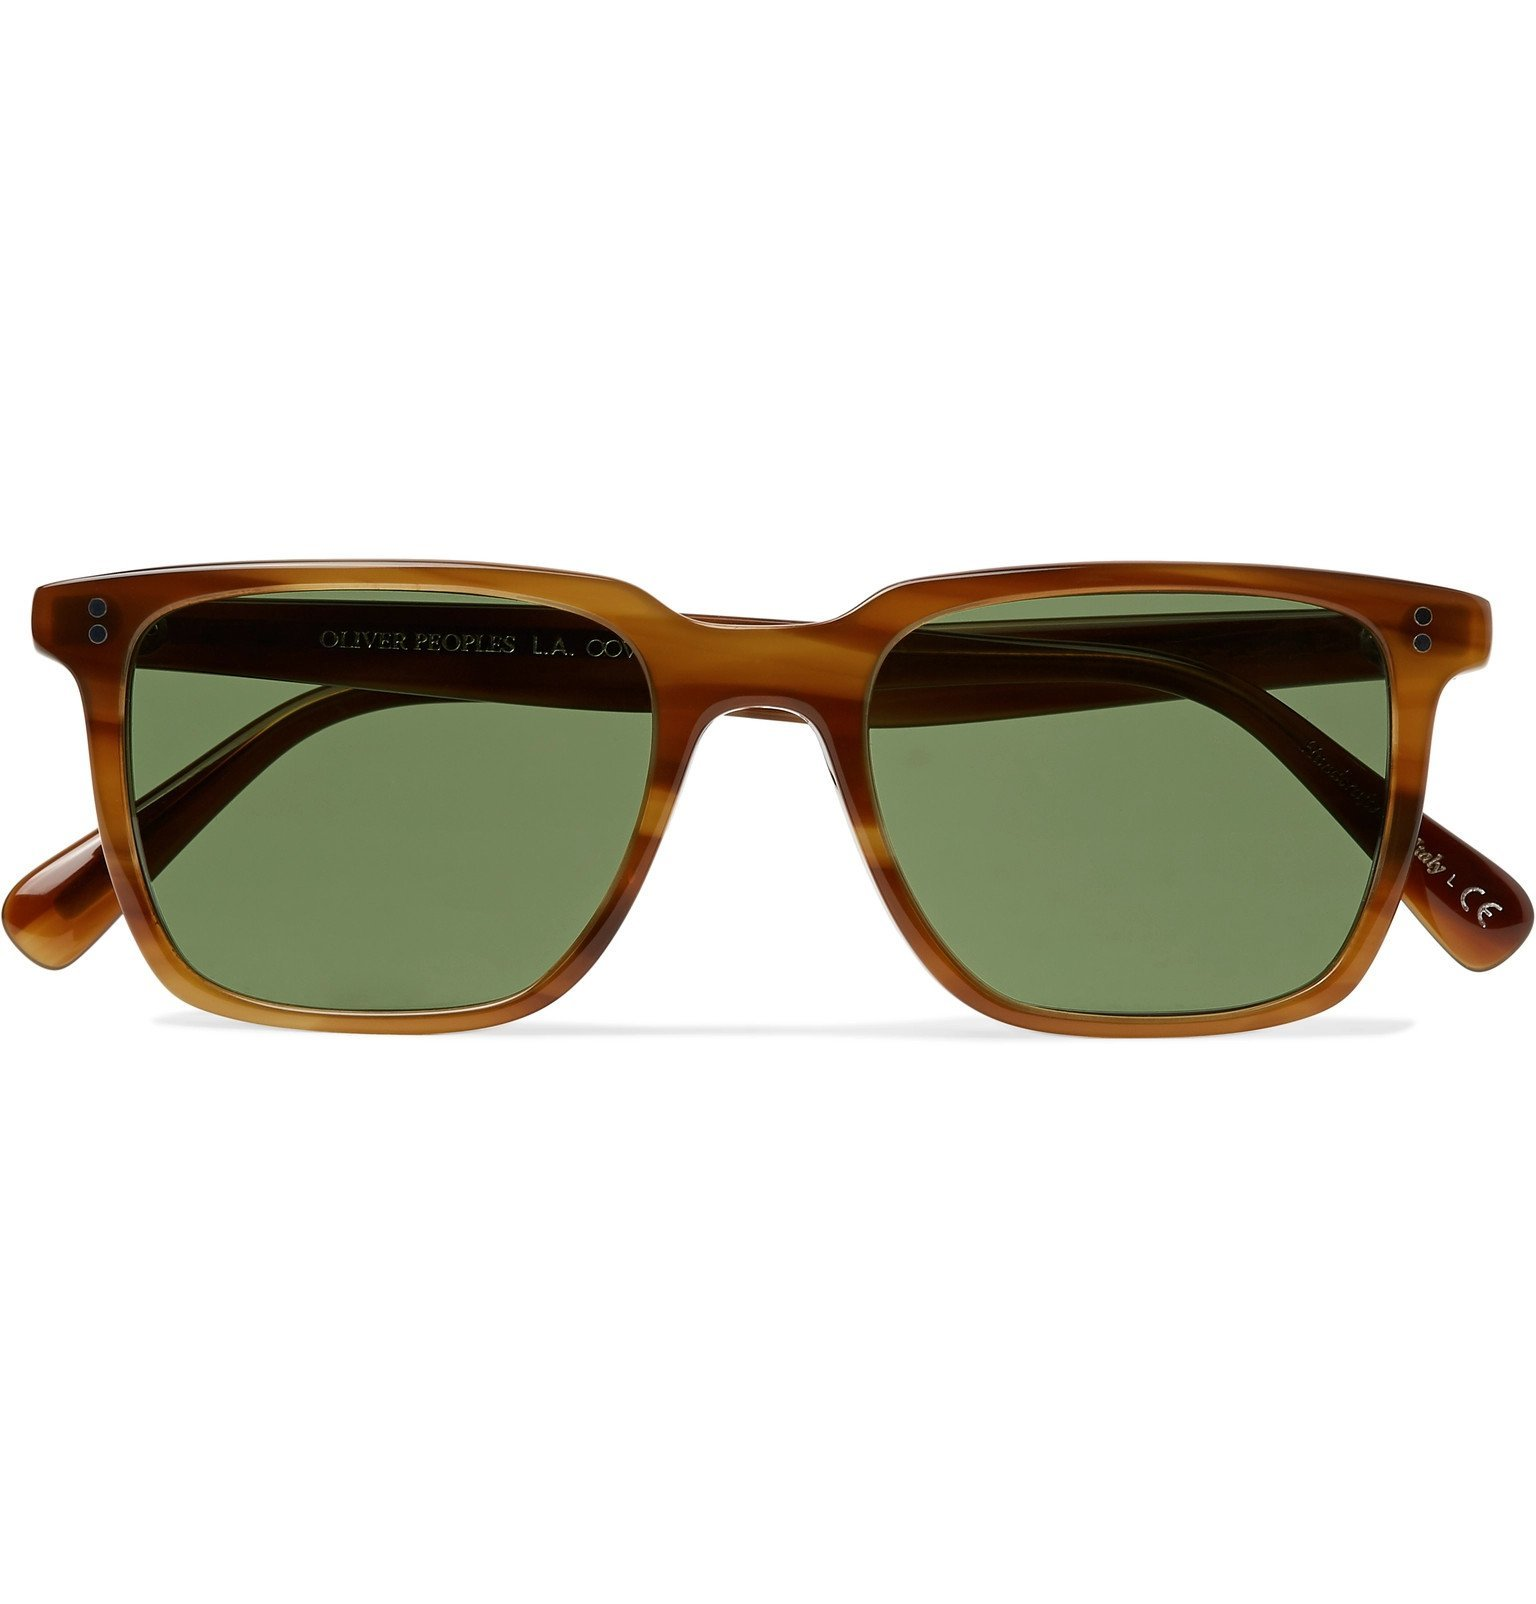 Oliver Peoples - Lachman Square-Frame Acetate Sunglasses - Tortoiseshell